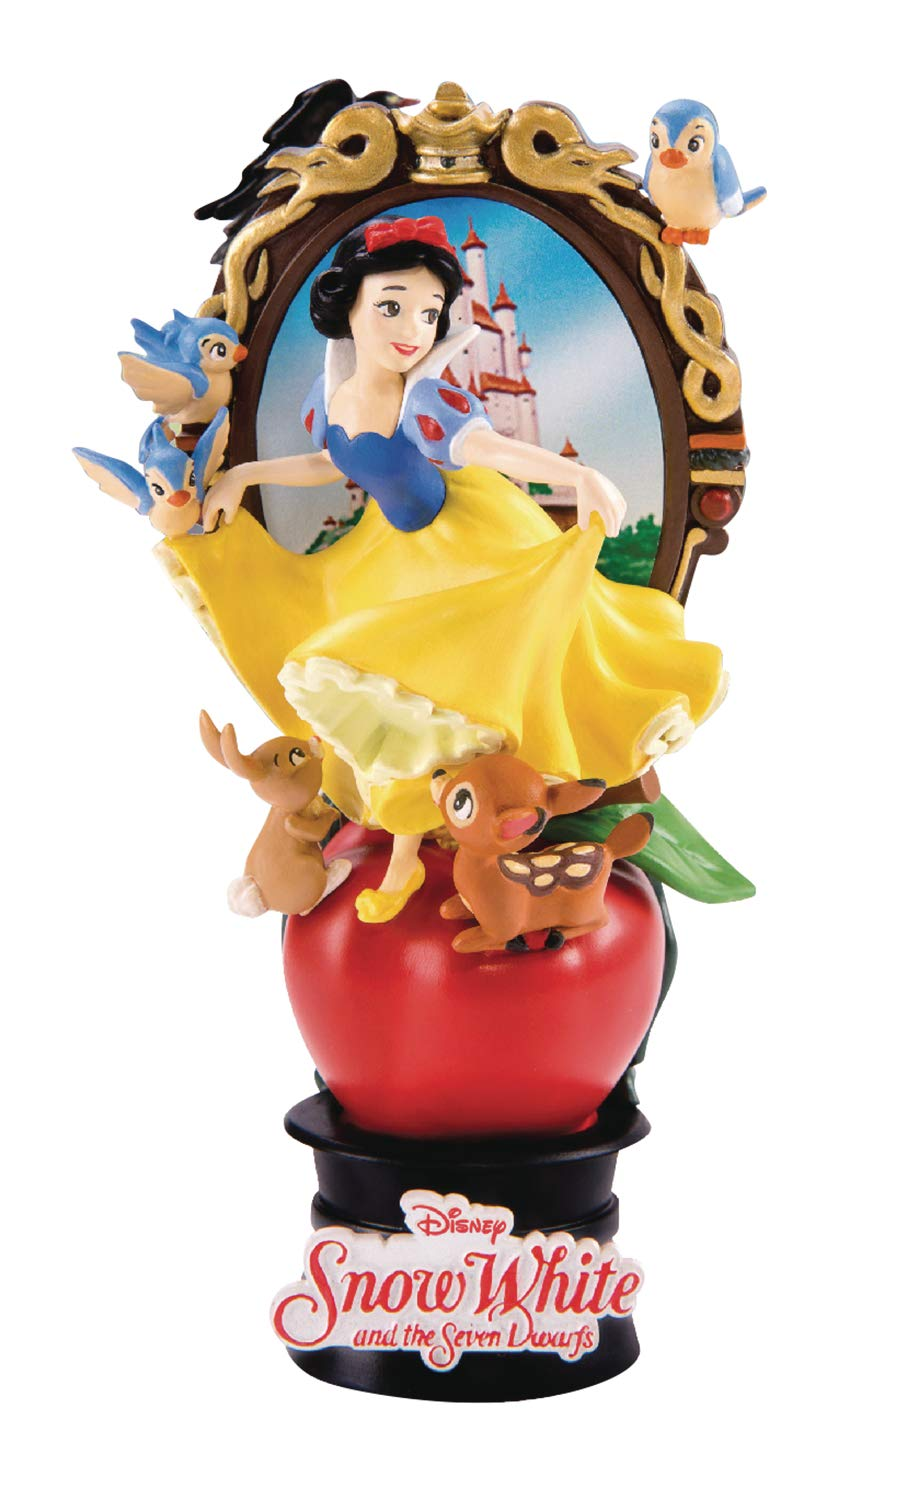 Disney Diorama Stage - Snow White and the Seven Dwarfs (DS-013)